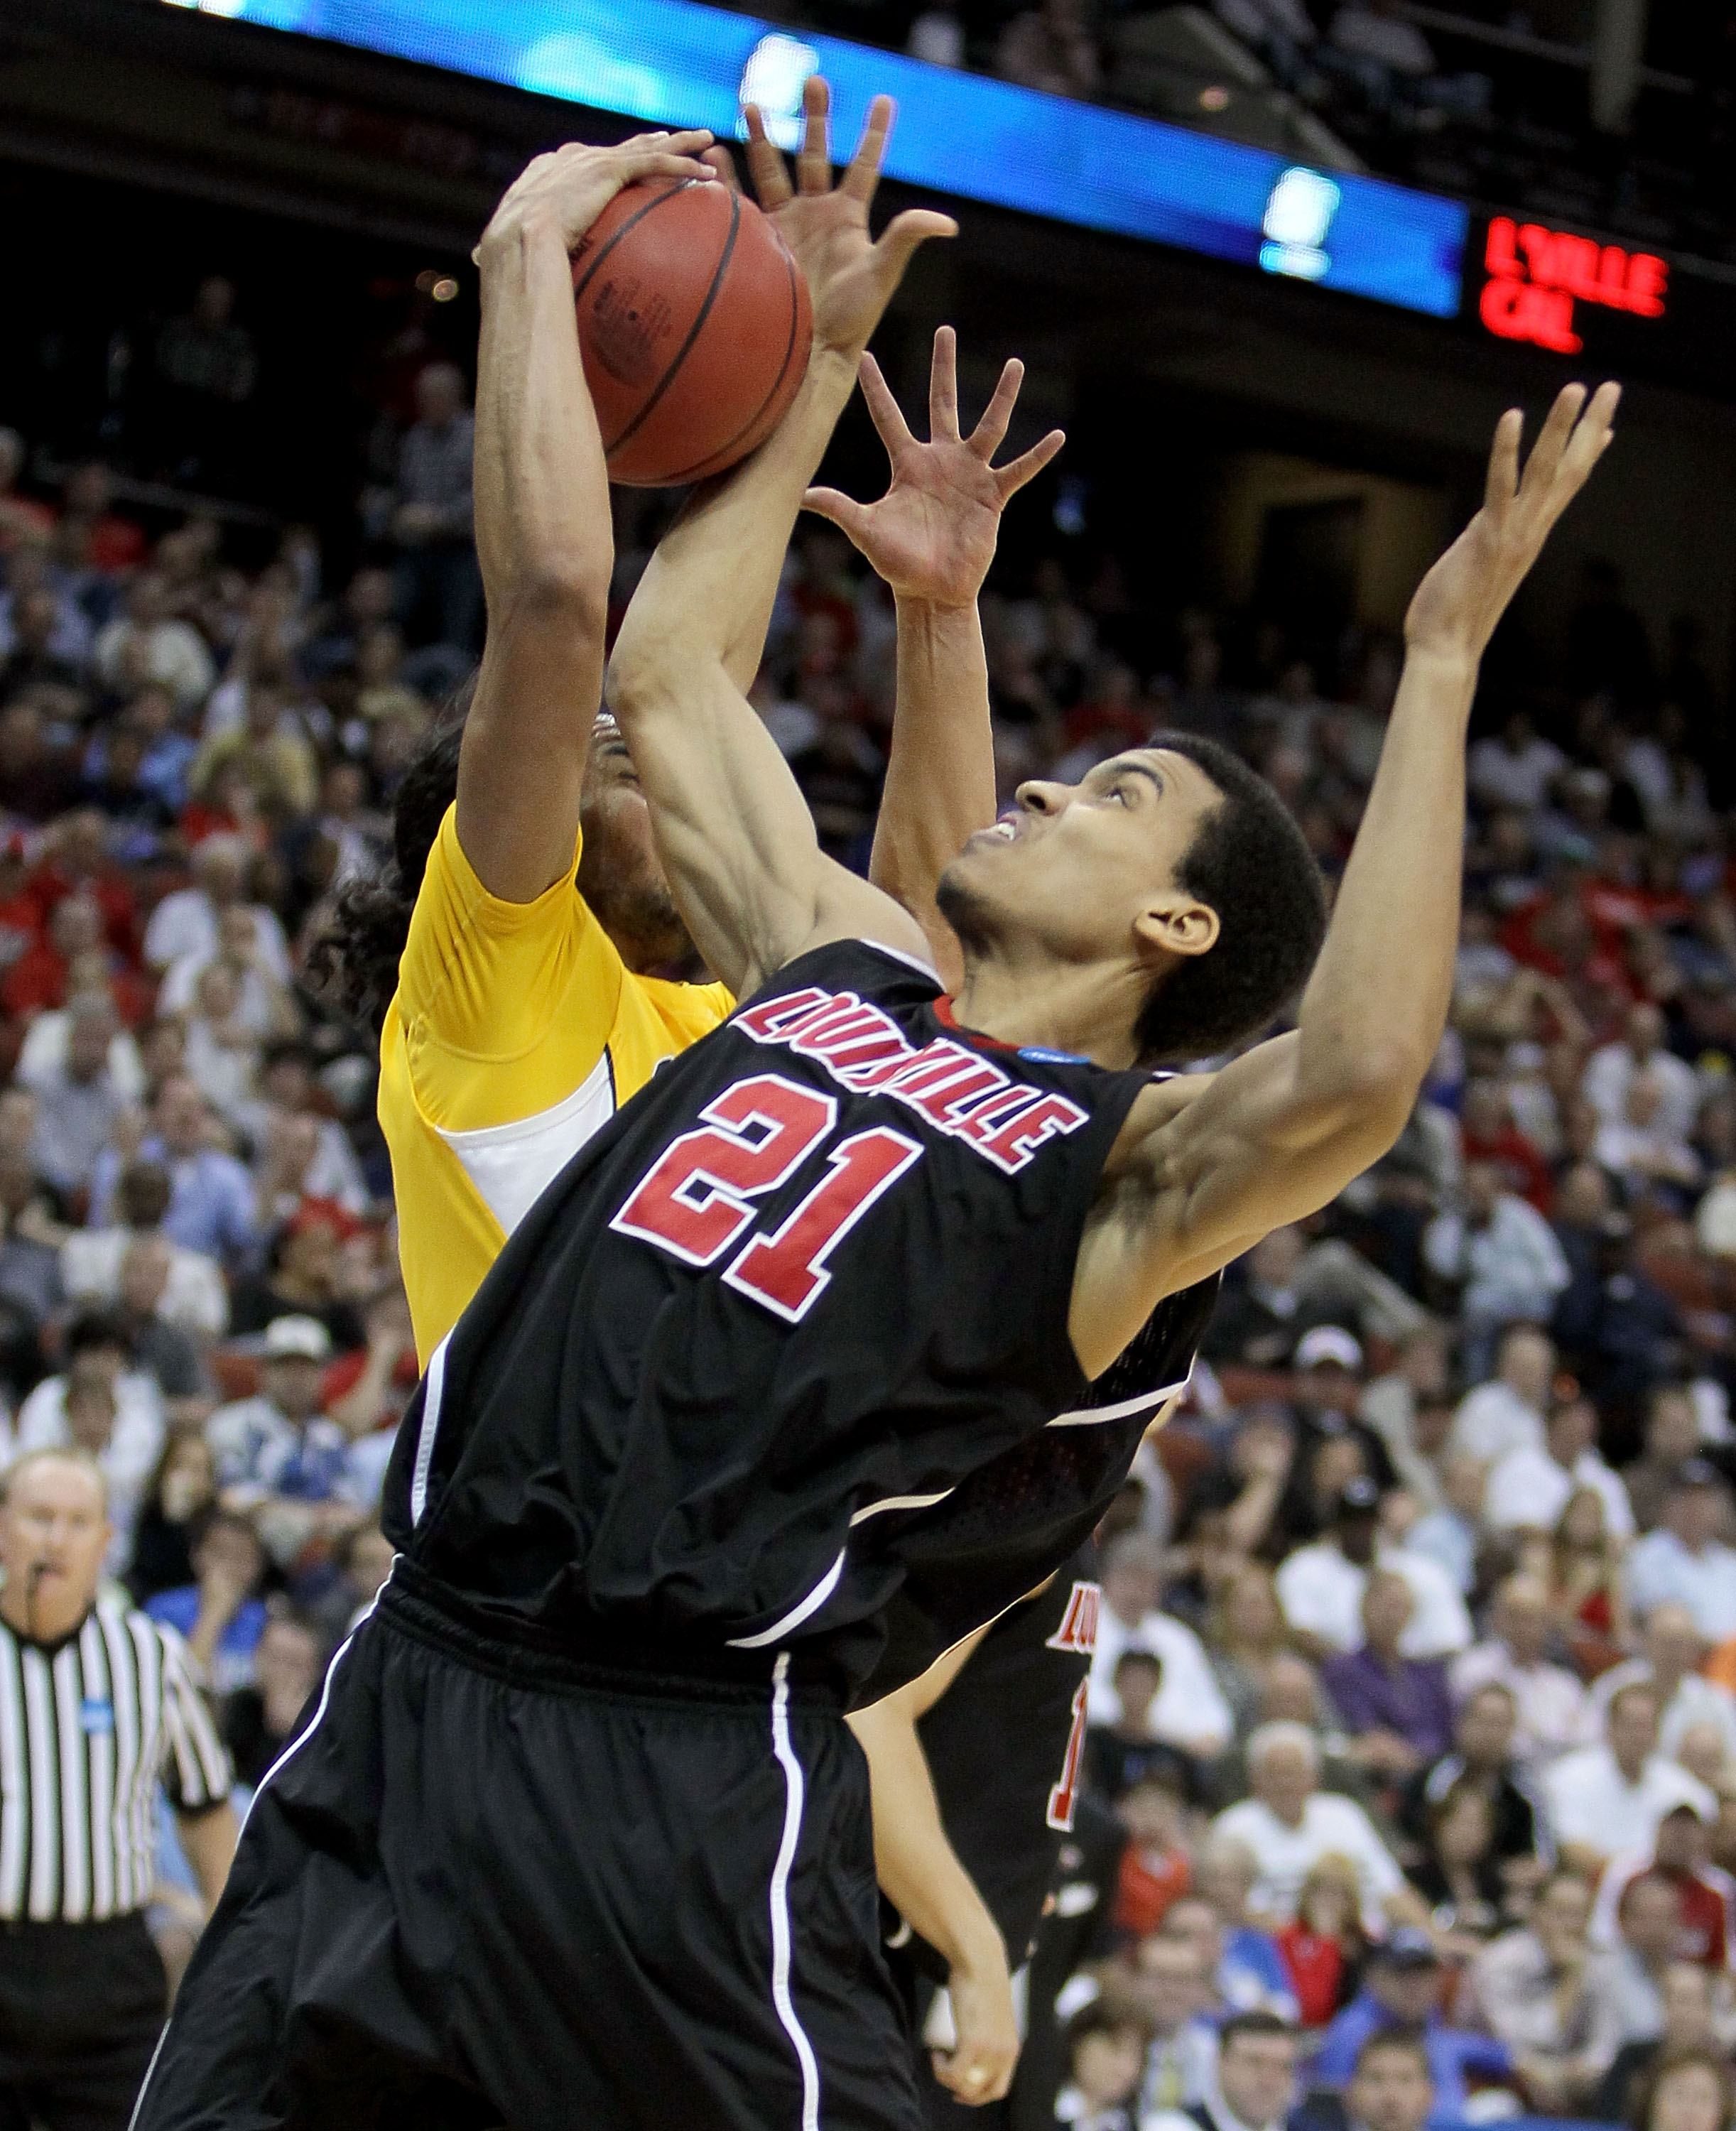 JACKSONVILLE, FL - MARCH 19: Jared Swopshire #21 of the Louisville Cardinals battles with Jorge Gutierrez #2 of the California Golden Bears during the first round of the 2010 NCAA men's basketball tournament at Jacksonville Veteran's Memorial Arena on Mar